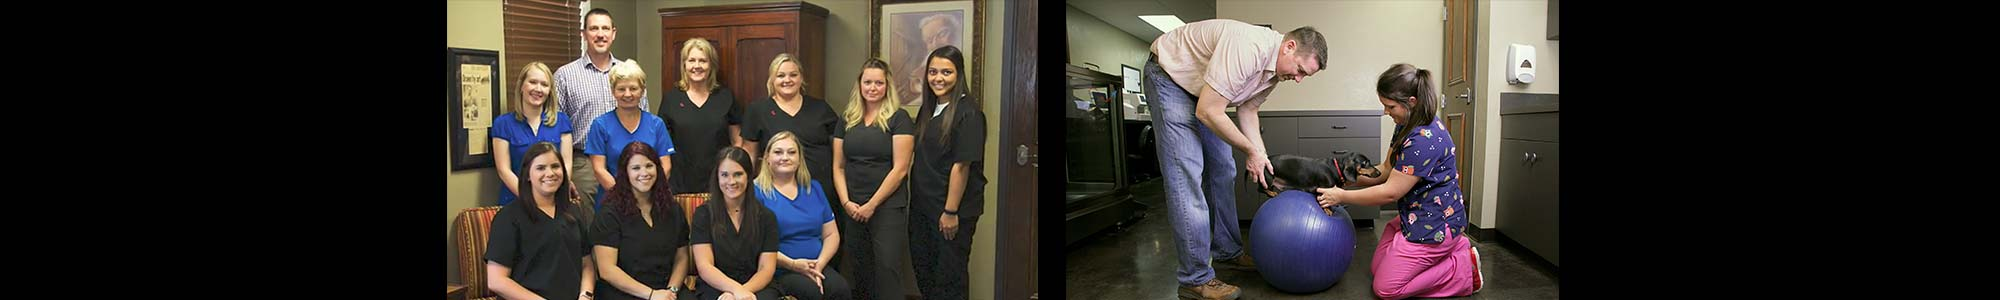 Oklahoma's Top Rated Local® Veterinarians Award Winner: McGee Street Animal Hospital